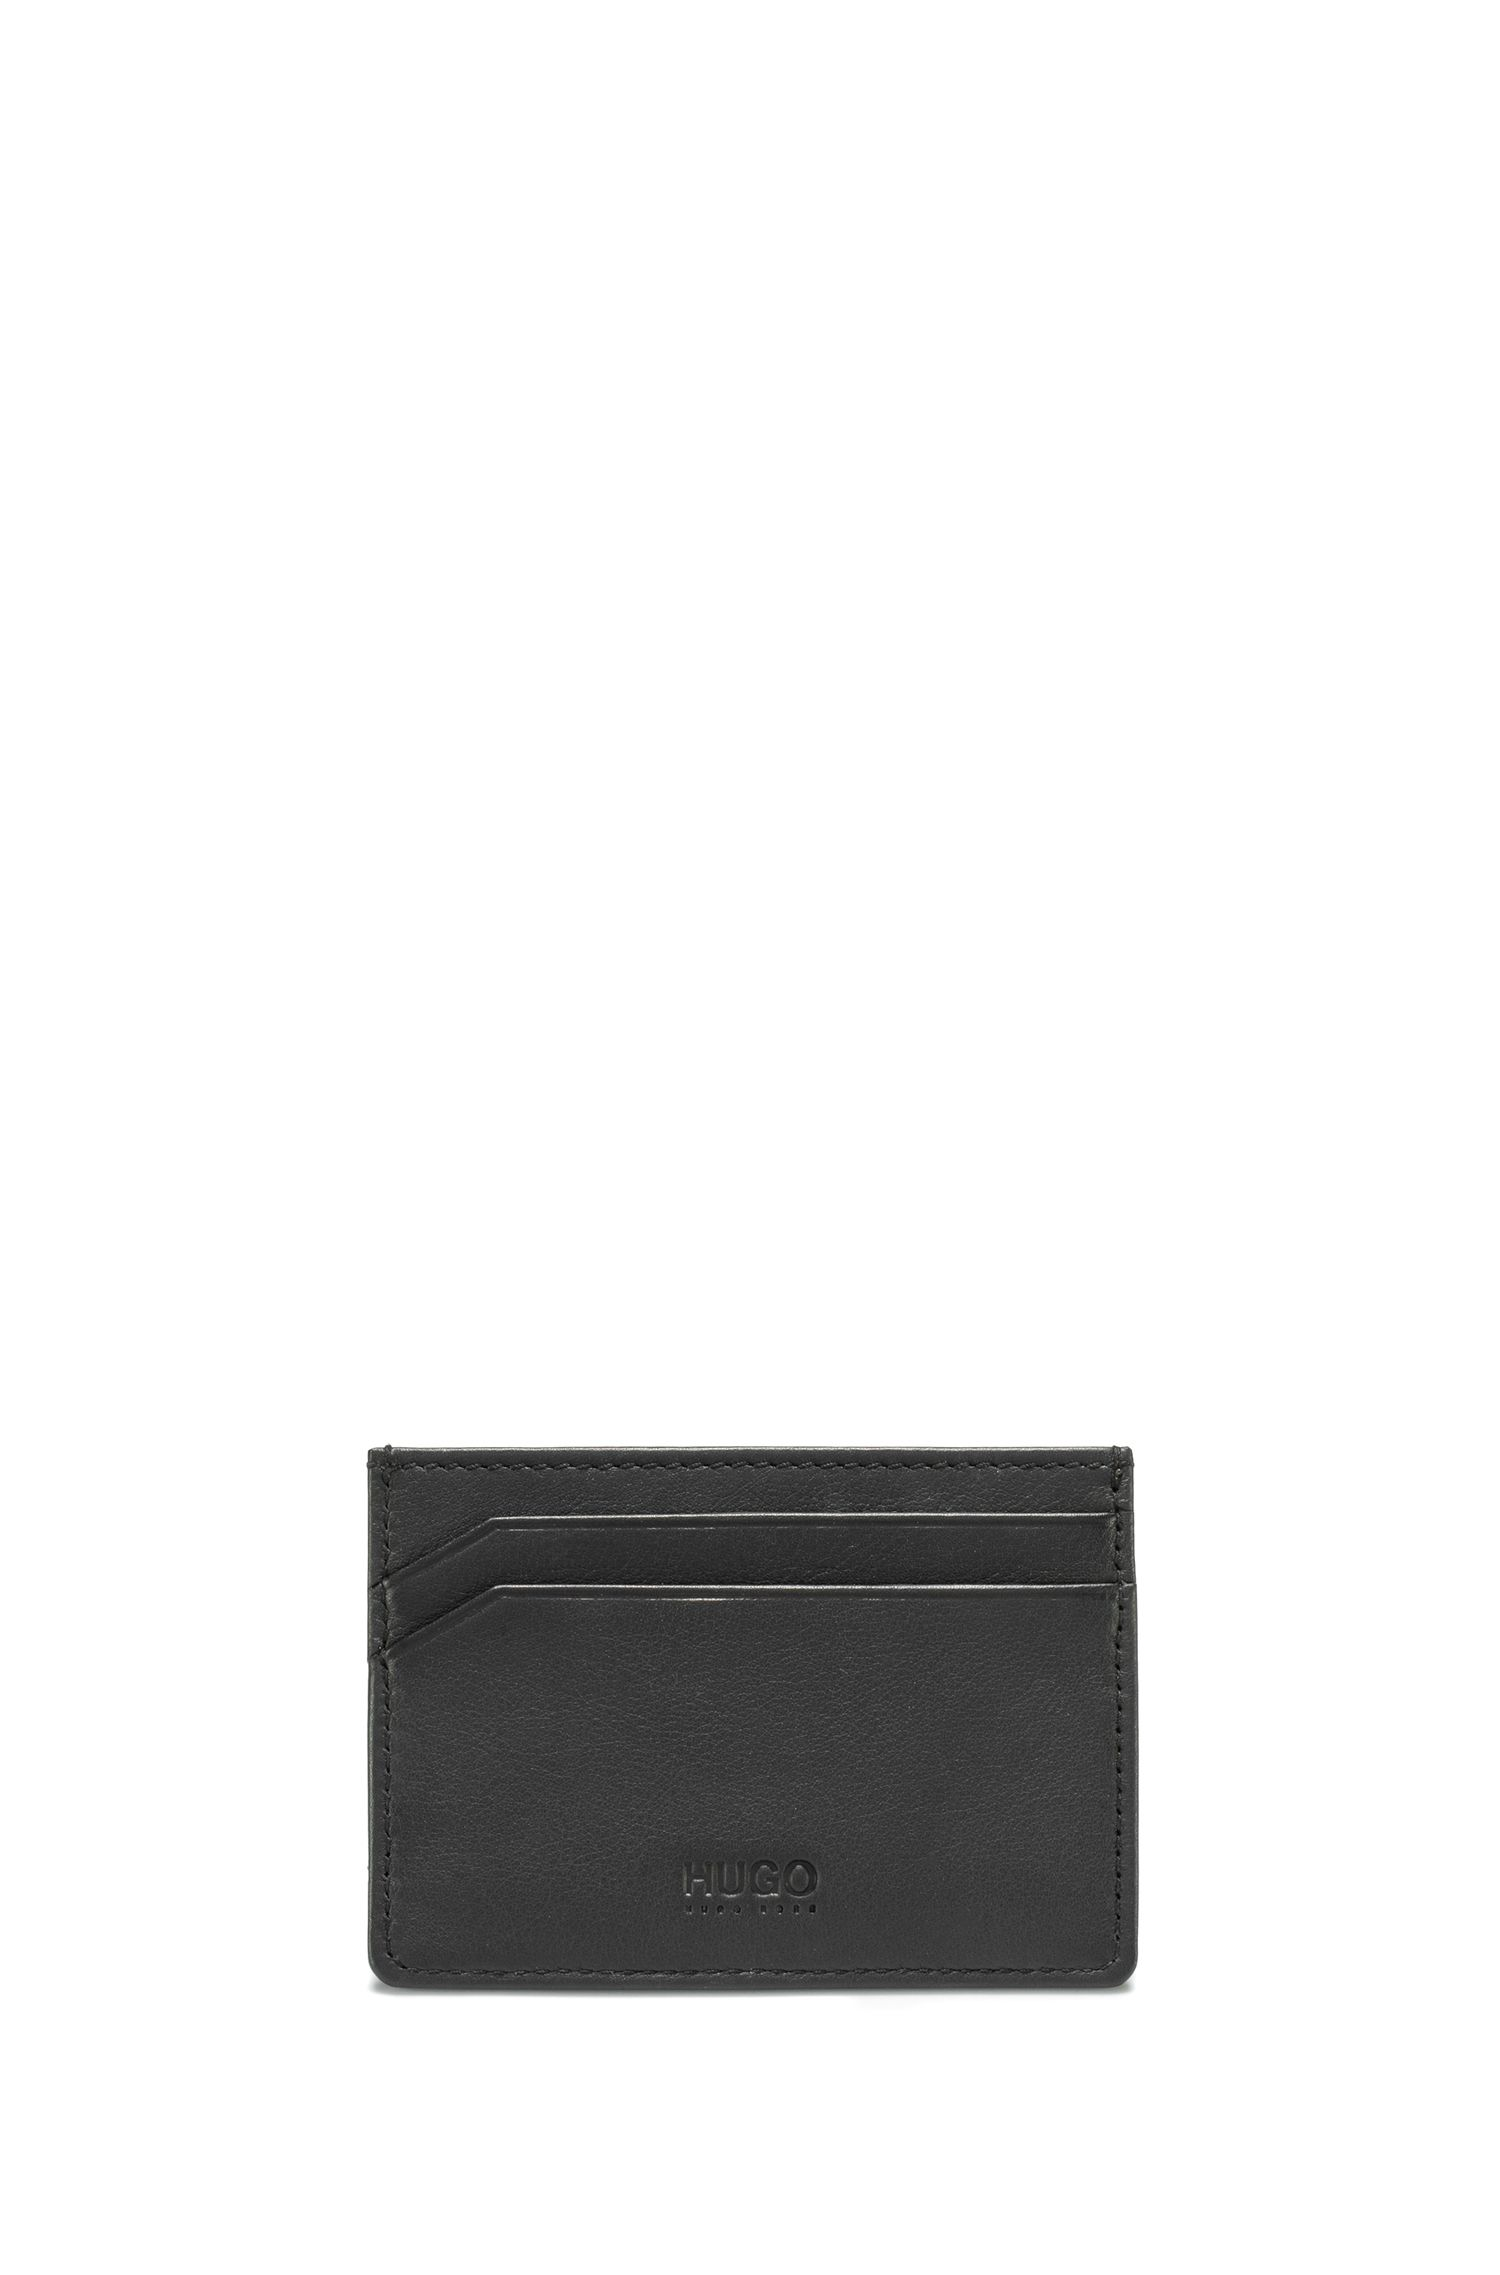 Camouflage-print leather card holder with reverse logo